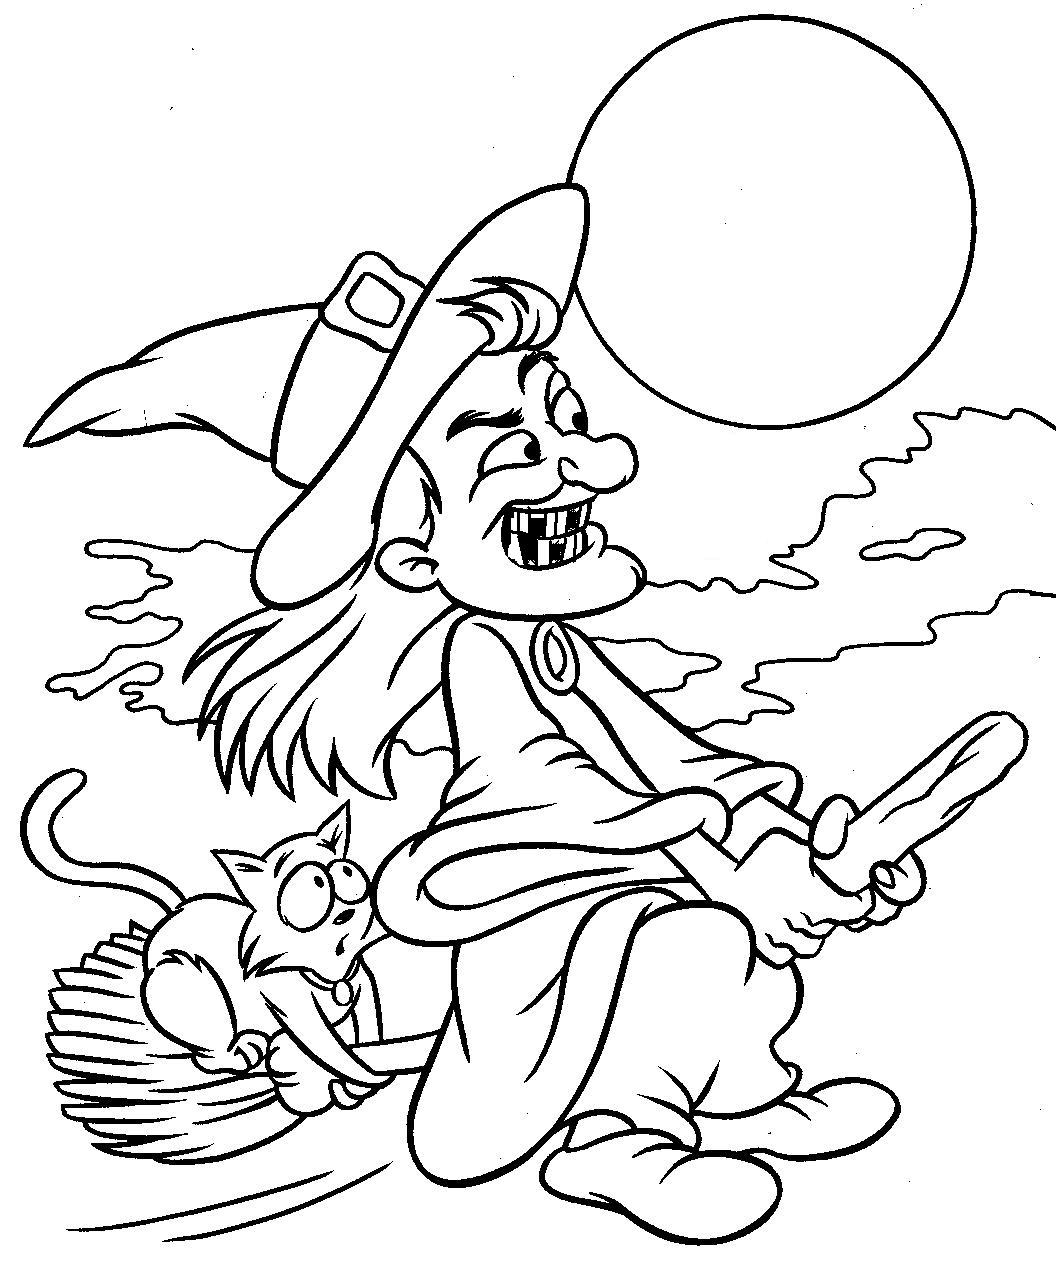 Halloween coloring pages free printable pictures for Halloween printable color pages